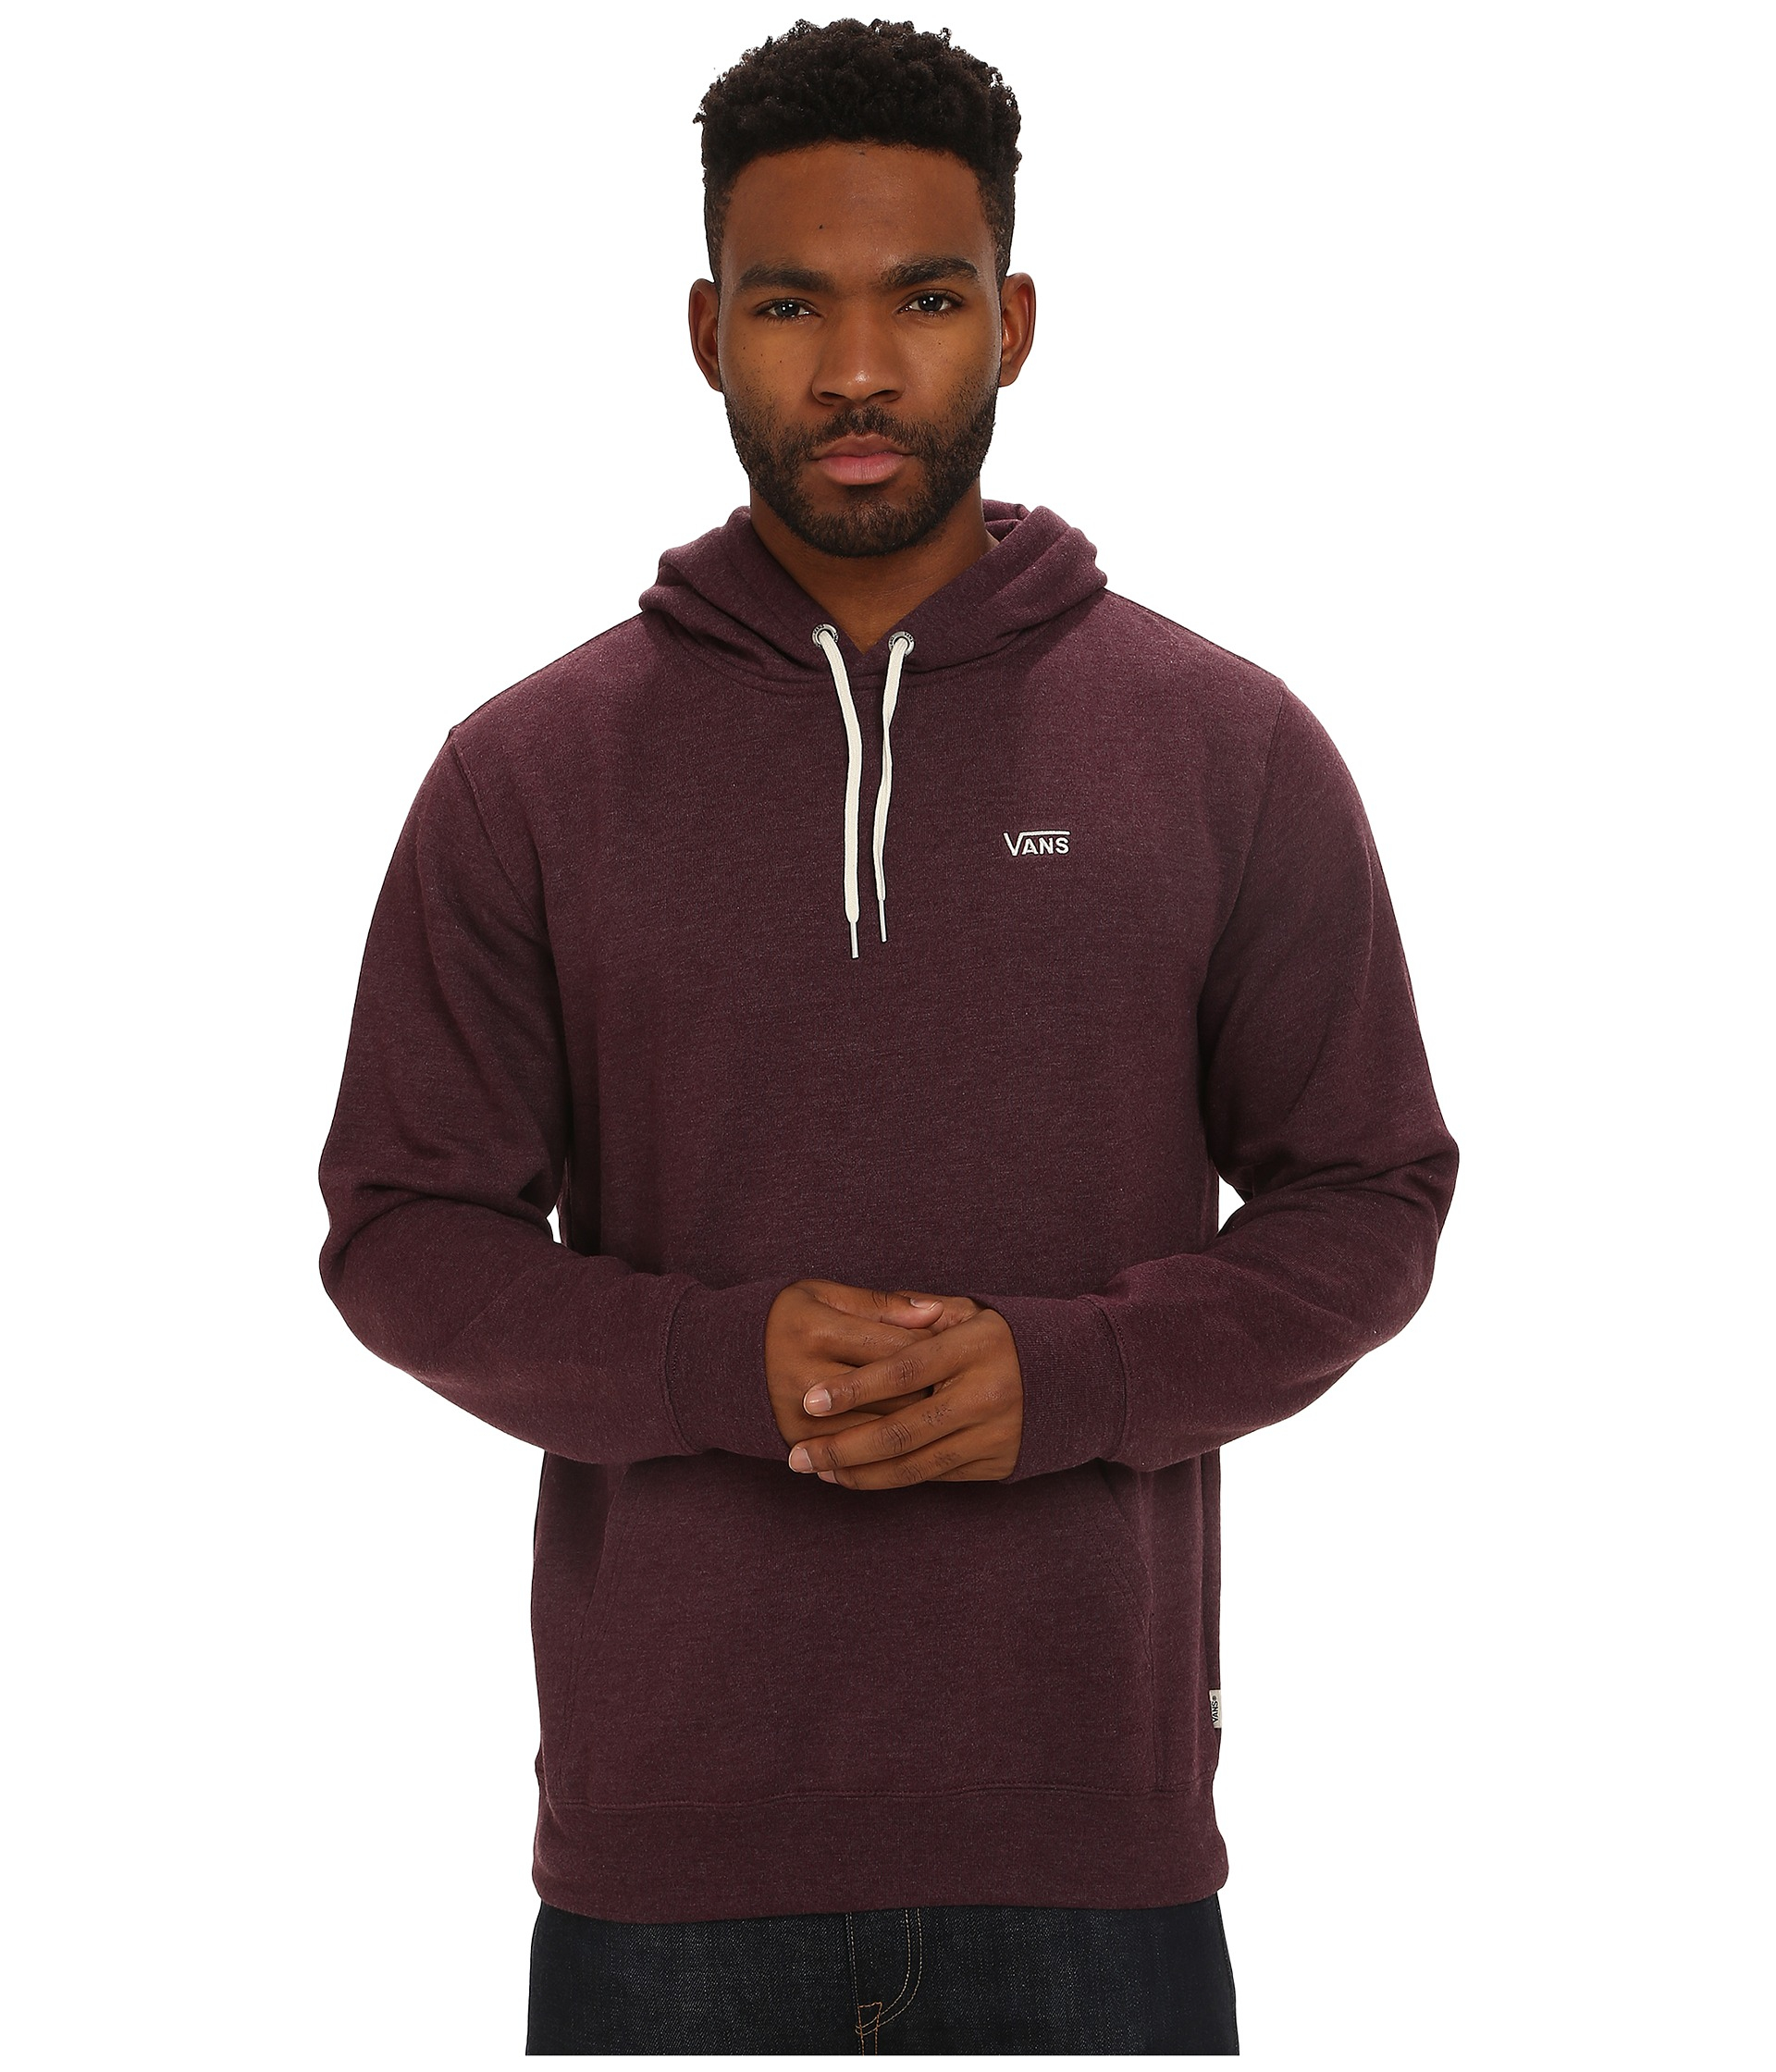 a9d4b6b53a Lyst - Vans Core Basics Pullover Hoodie in Red for Men